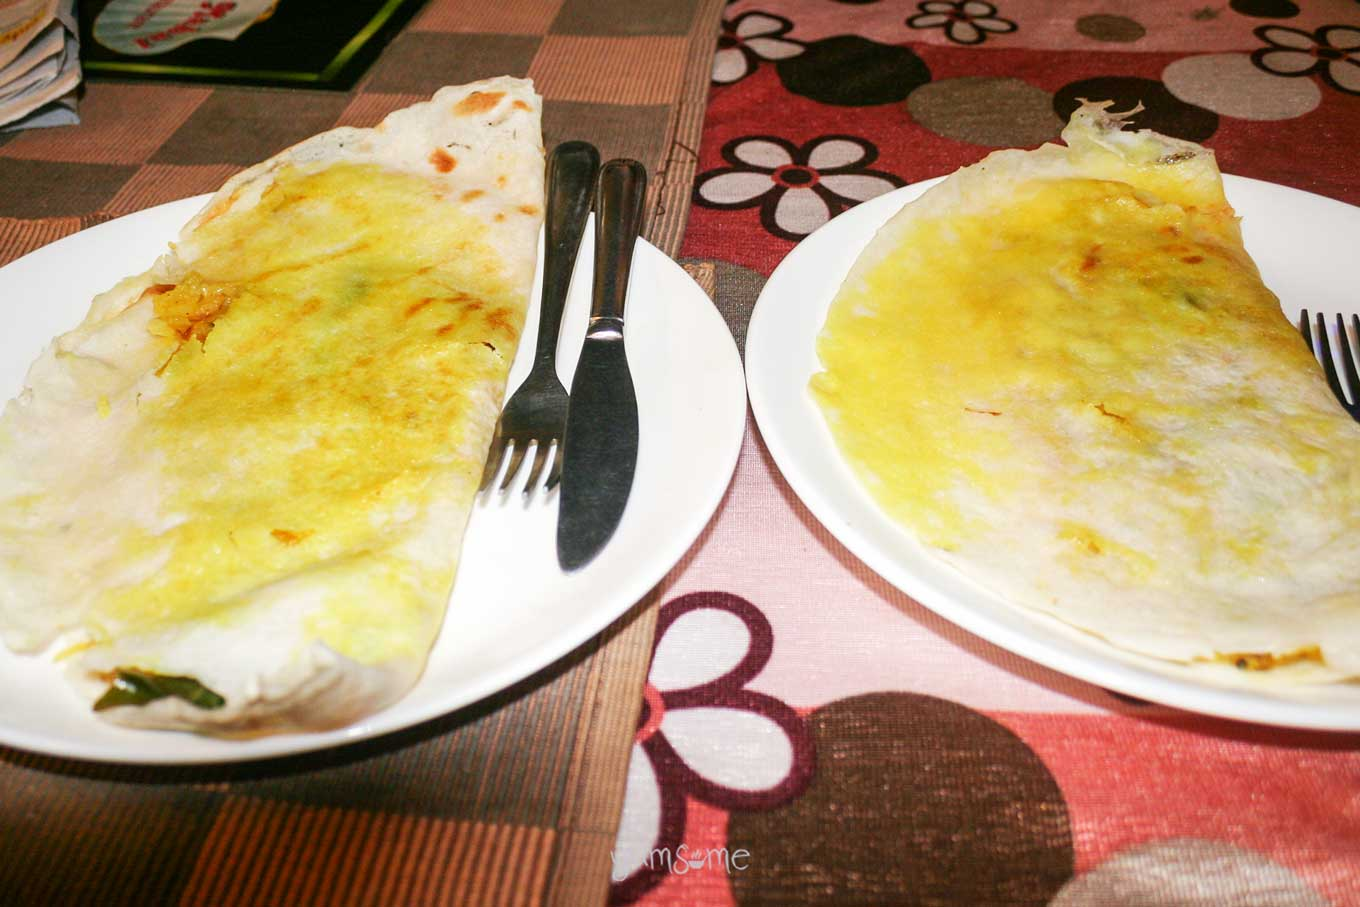 Two masala dosai on white plates, on a coloured tablecloth.